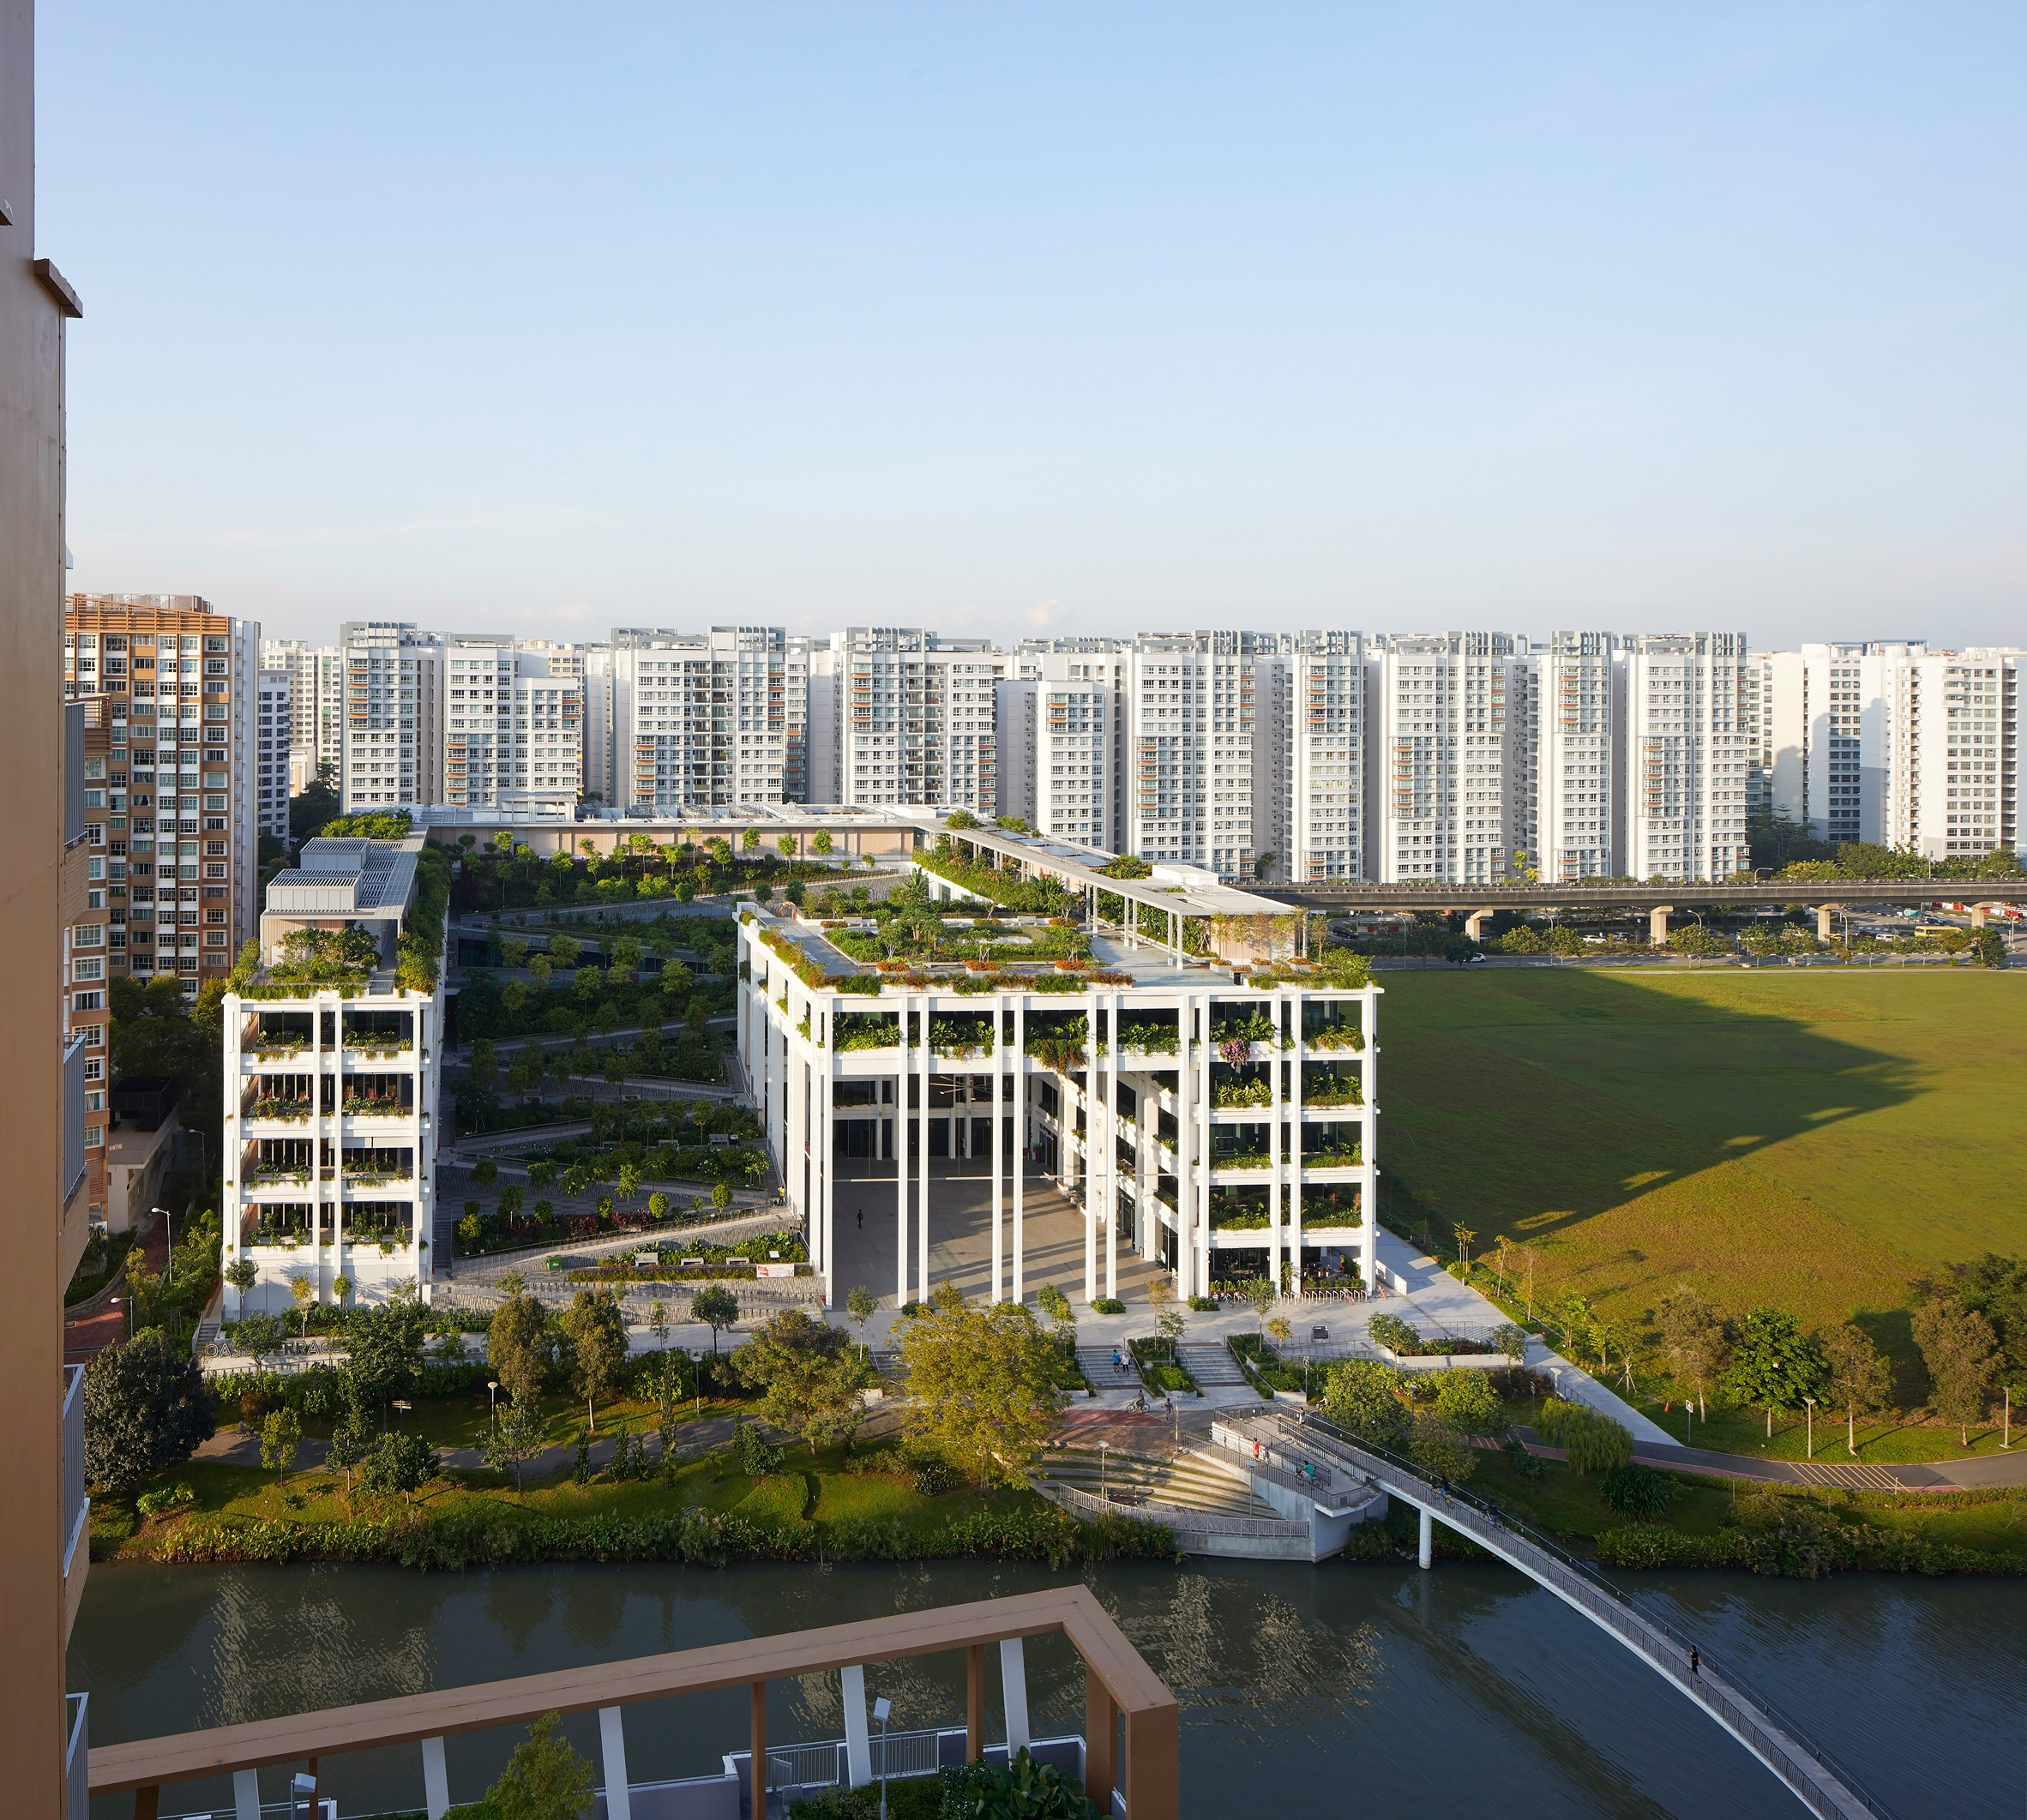 Oasis Terraces by Serie and Multiply Architects